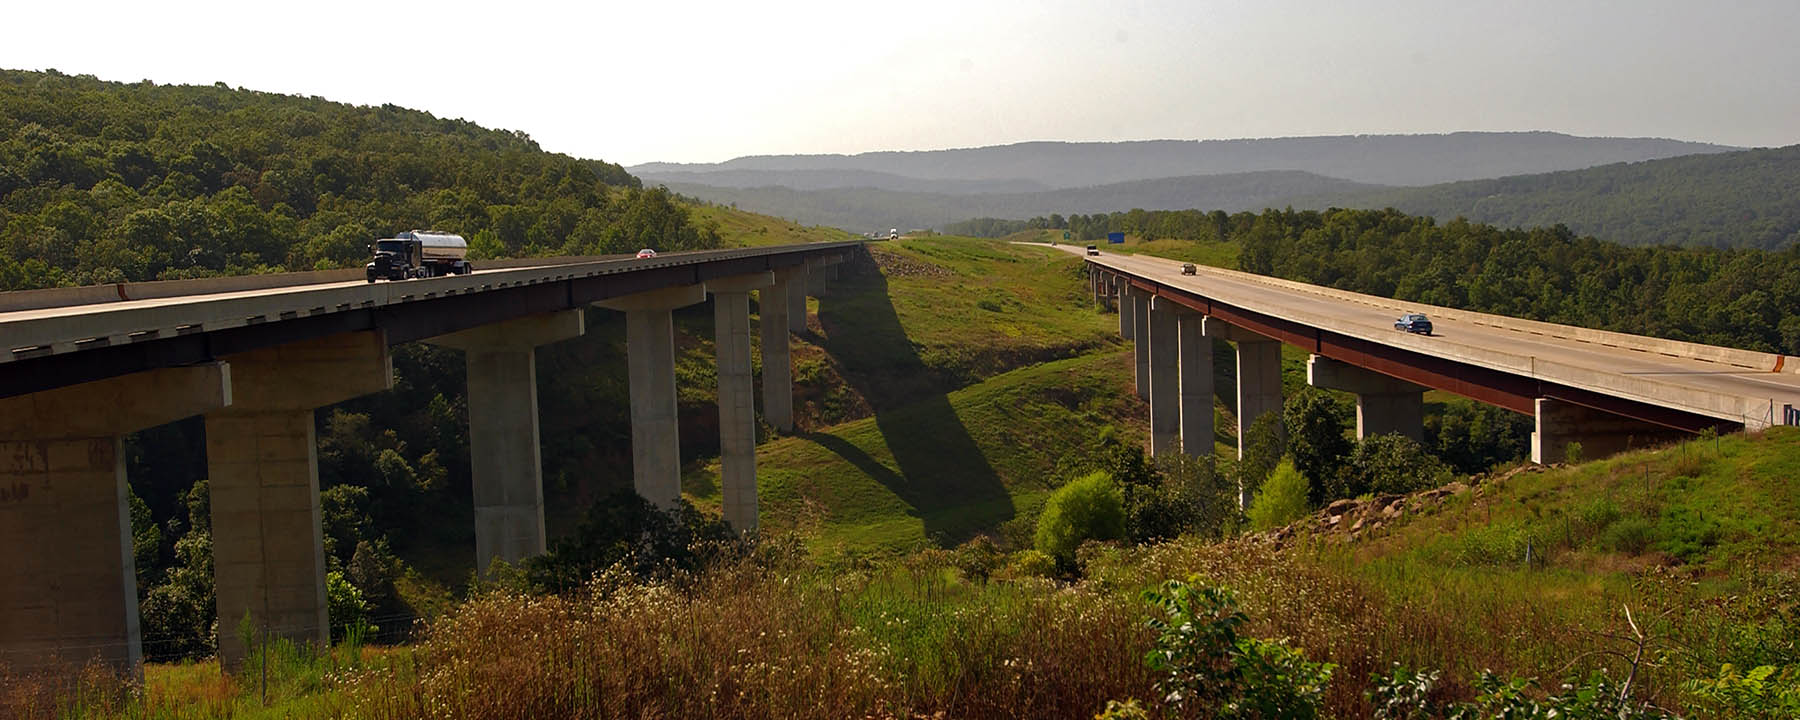 Arkansas-Good-Roads-Foundation-Slider-Image-7